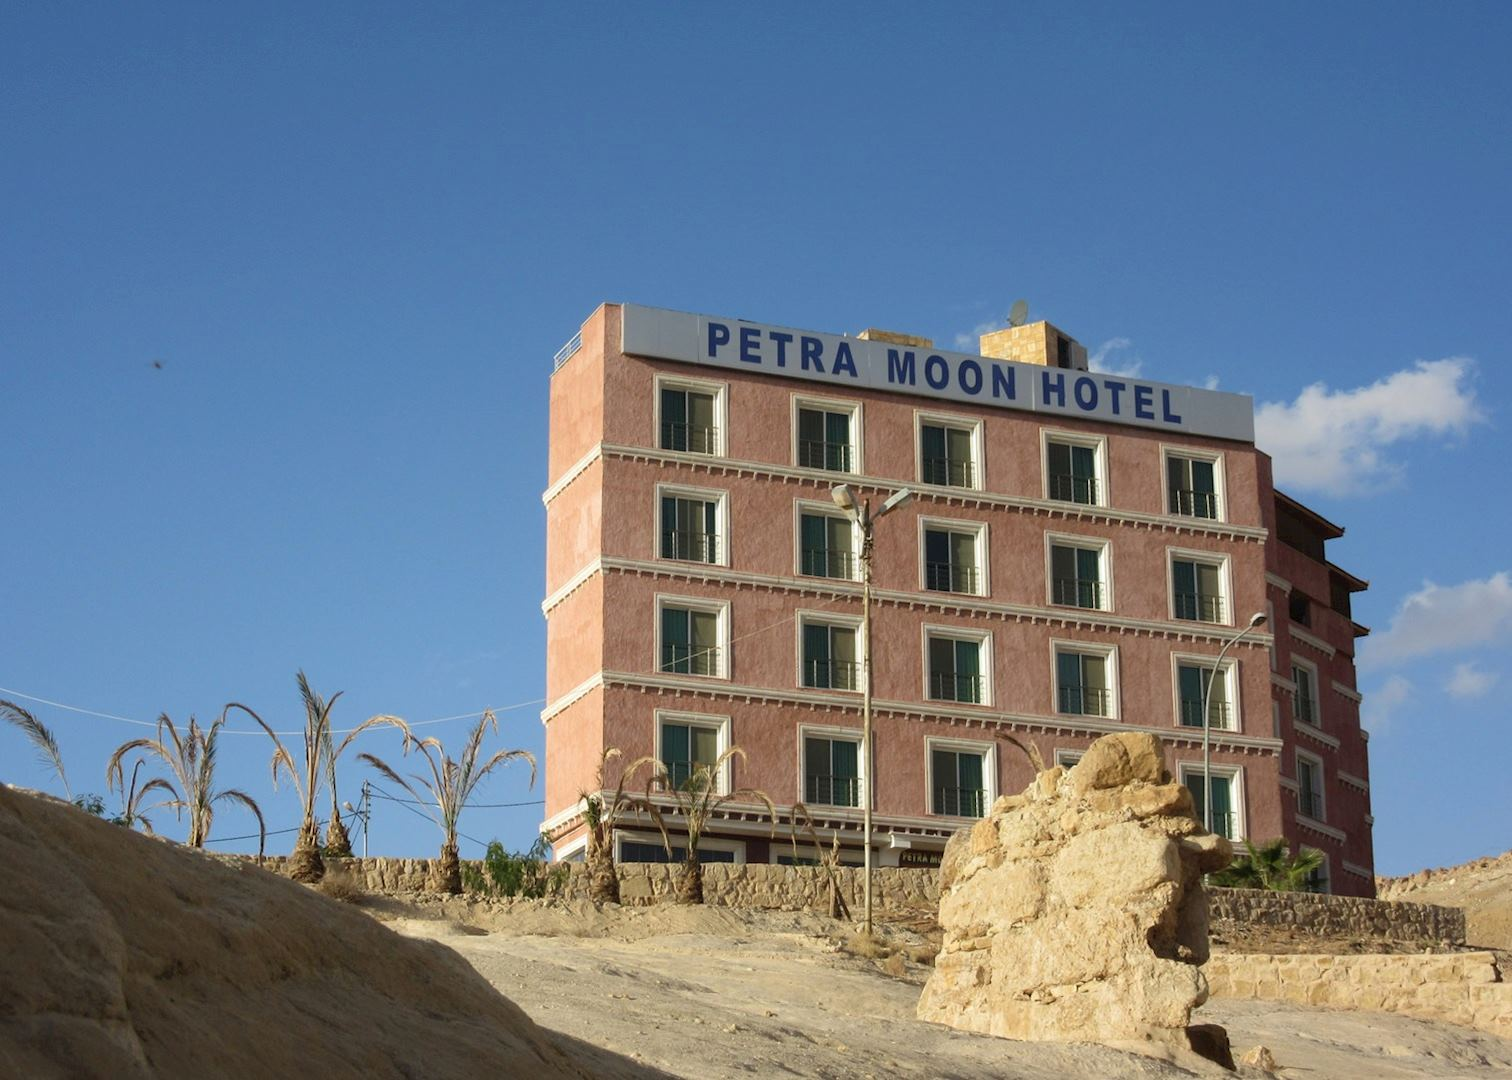 petra moon hotel hotels in petra audley travel